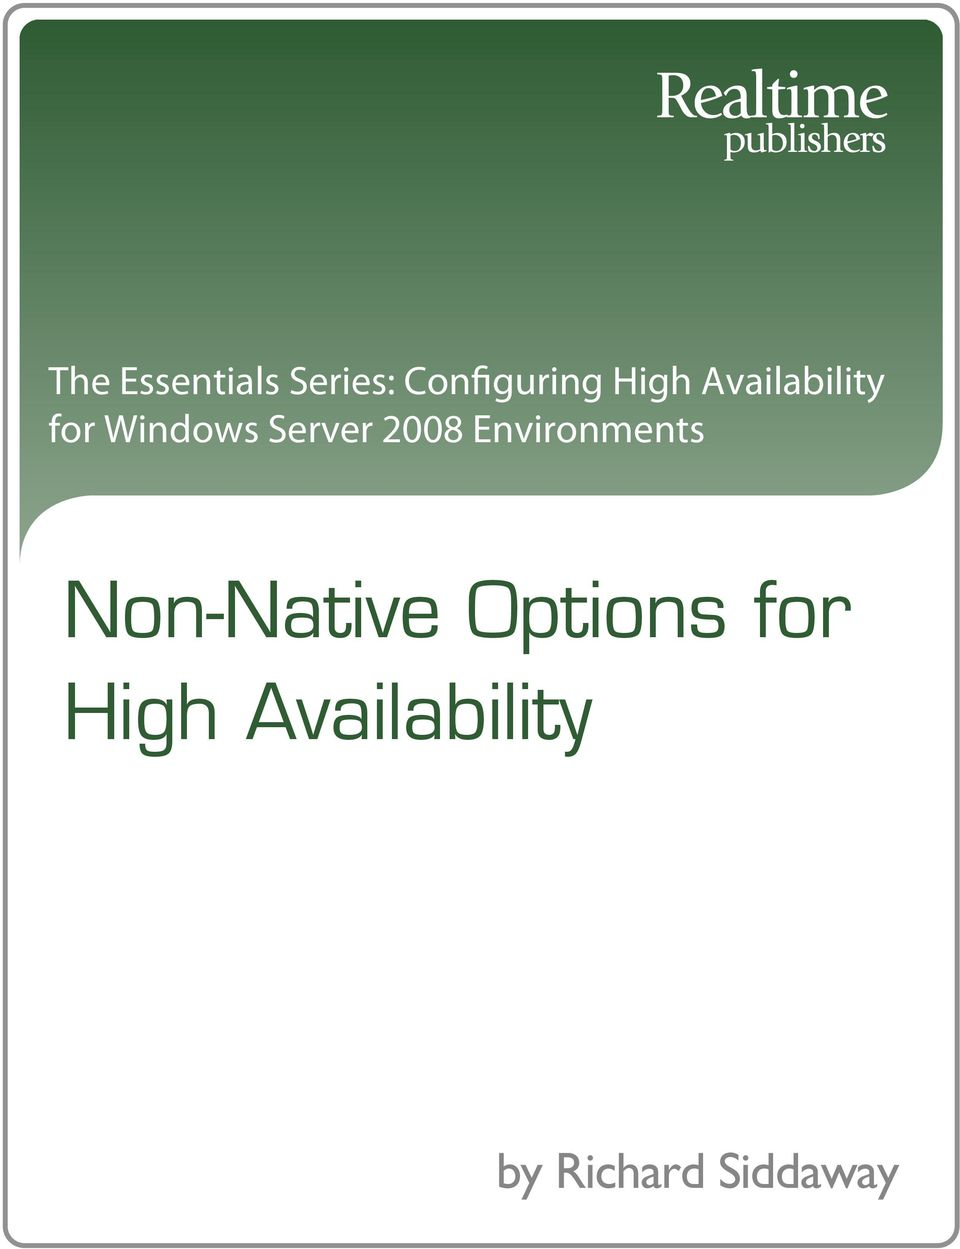 Windows Server 2008 Environments